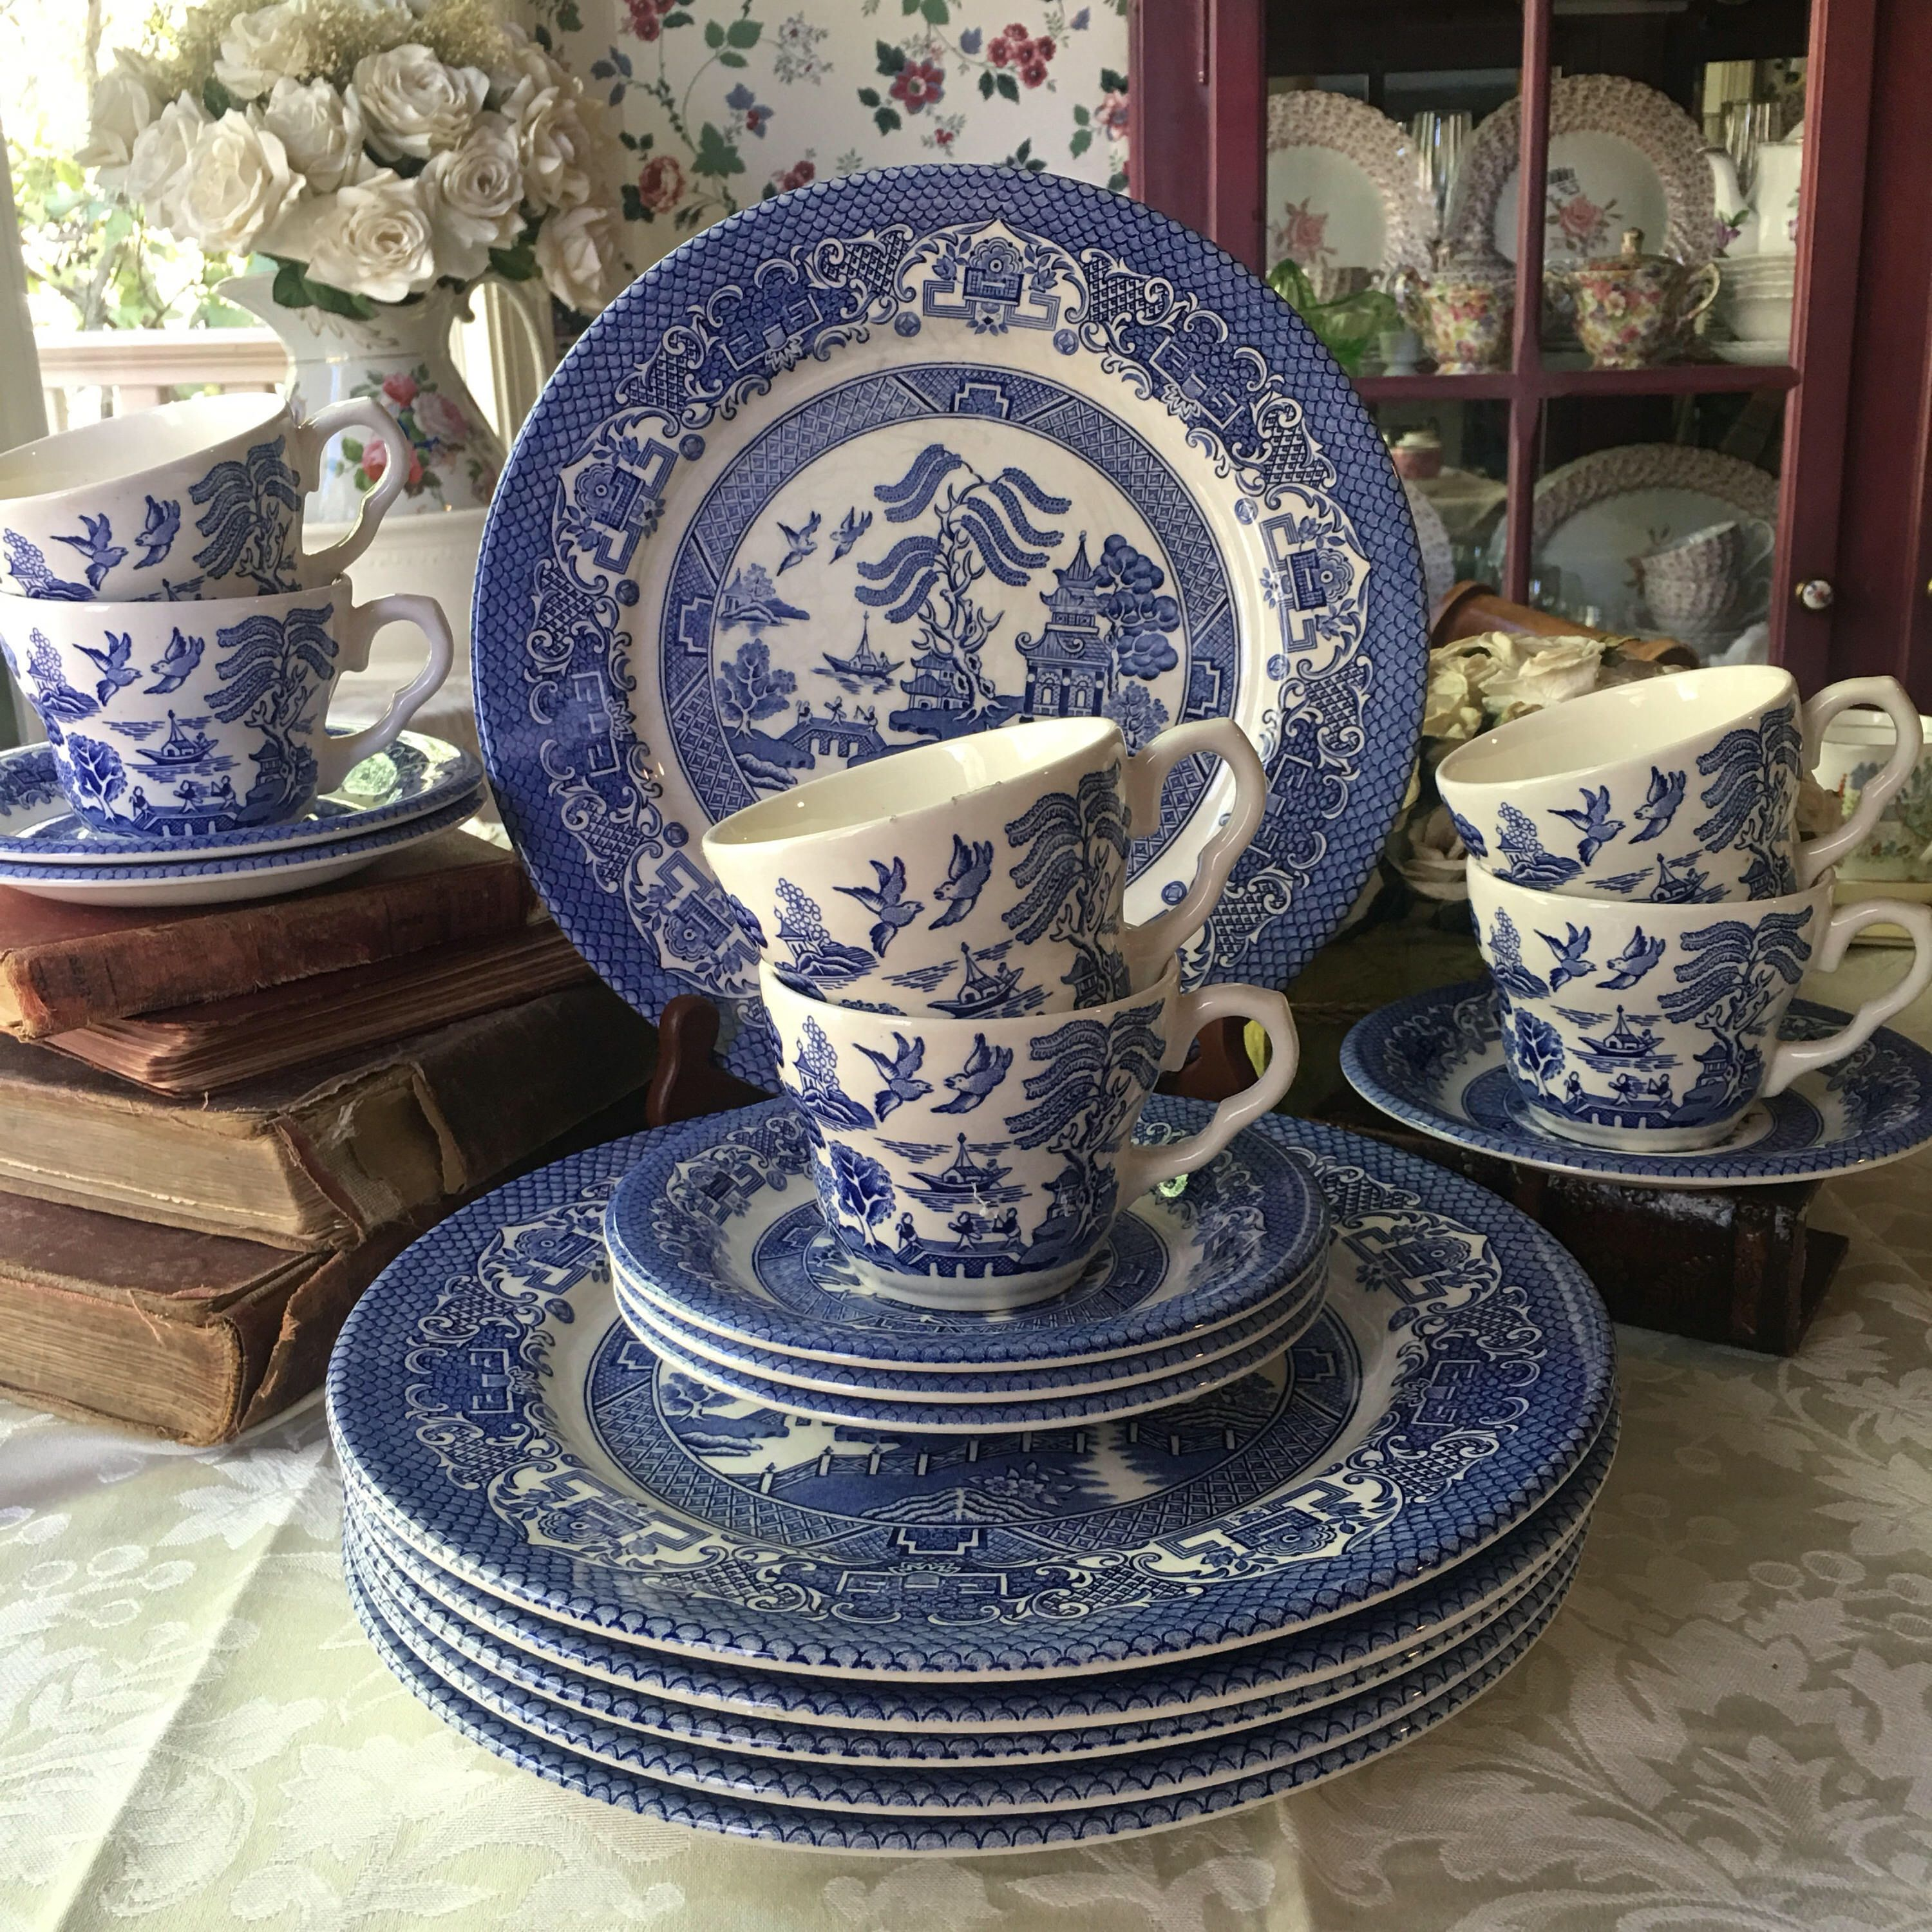 A Personal Favorite From My Etsy Shop Https Www Etsy Com Listing 551648800 English Ironstone Blue Willow S Blue Willow China Blue Willow Blue And White China